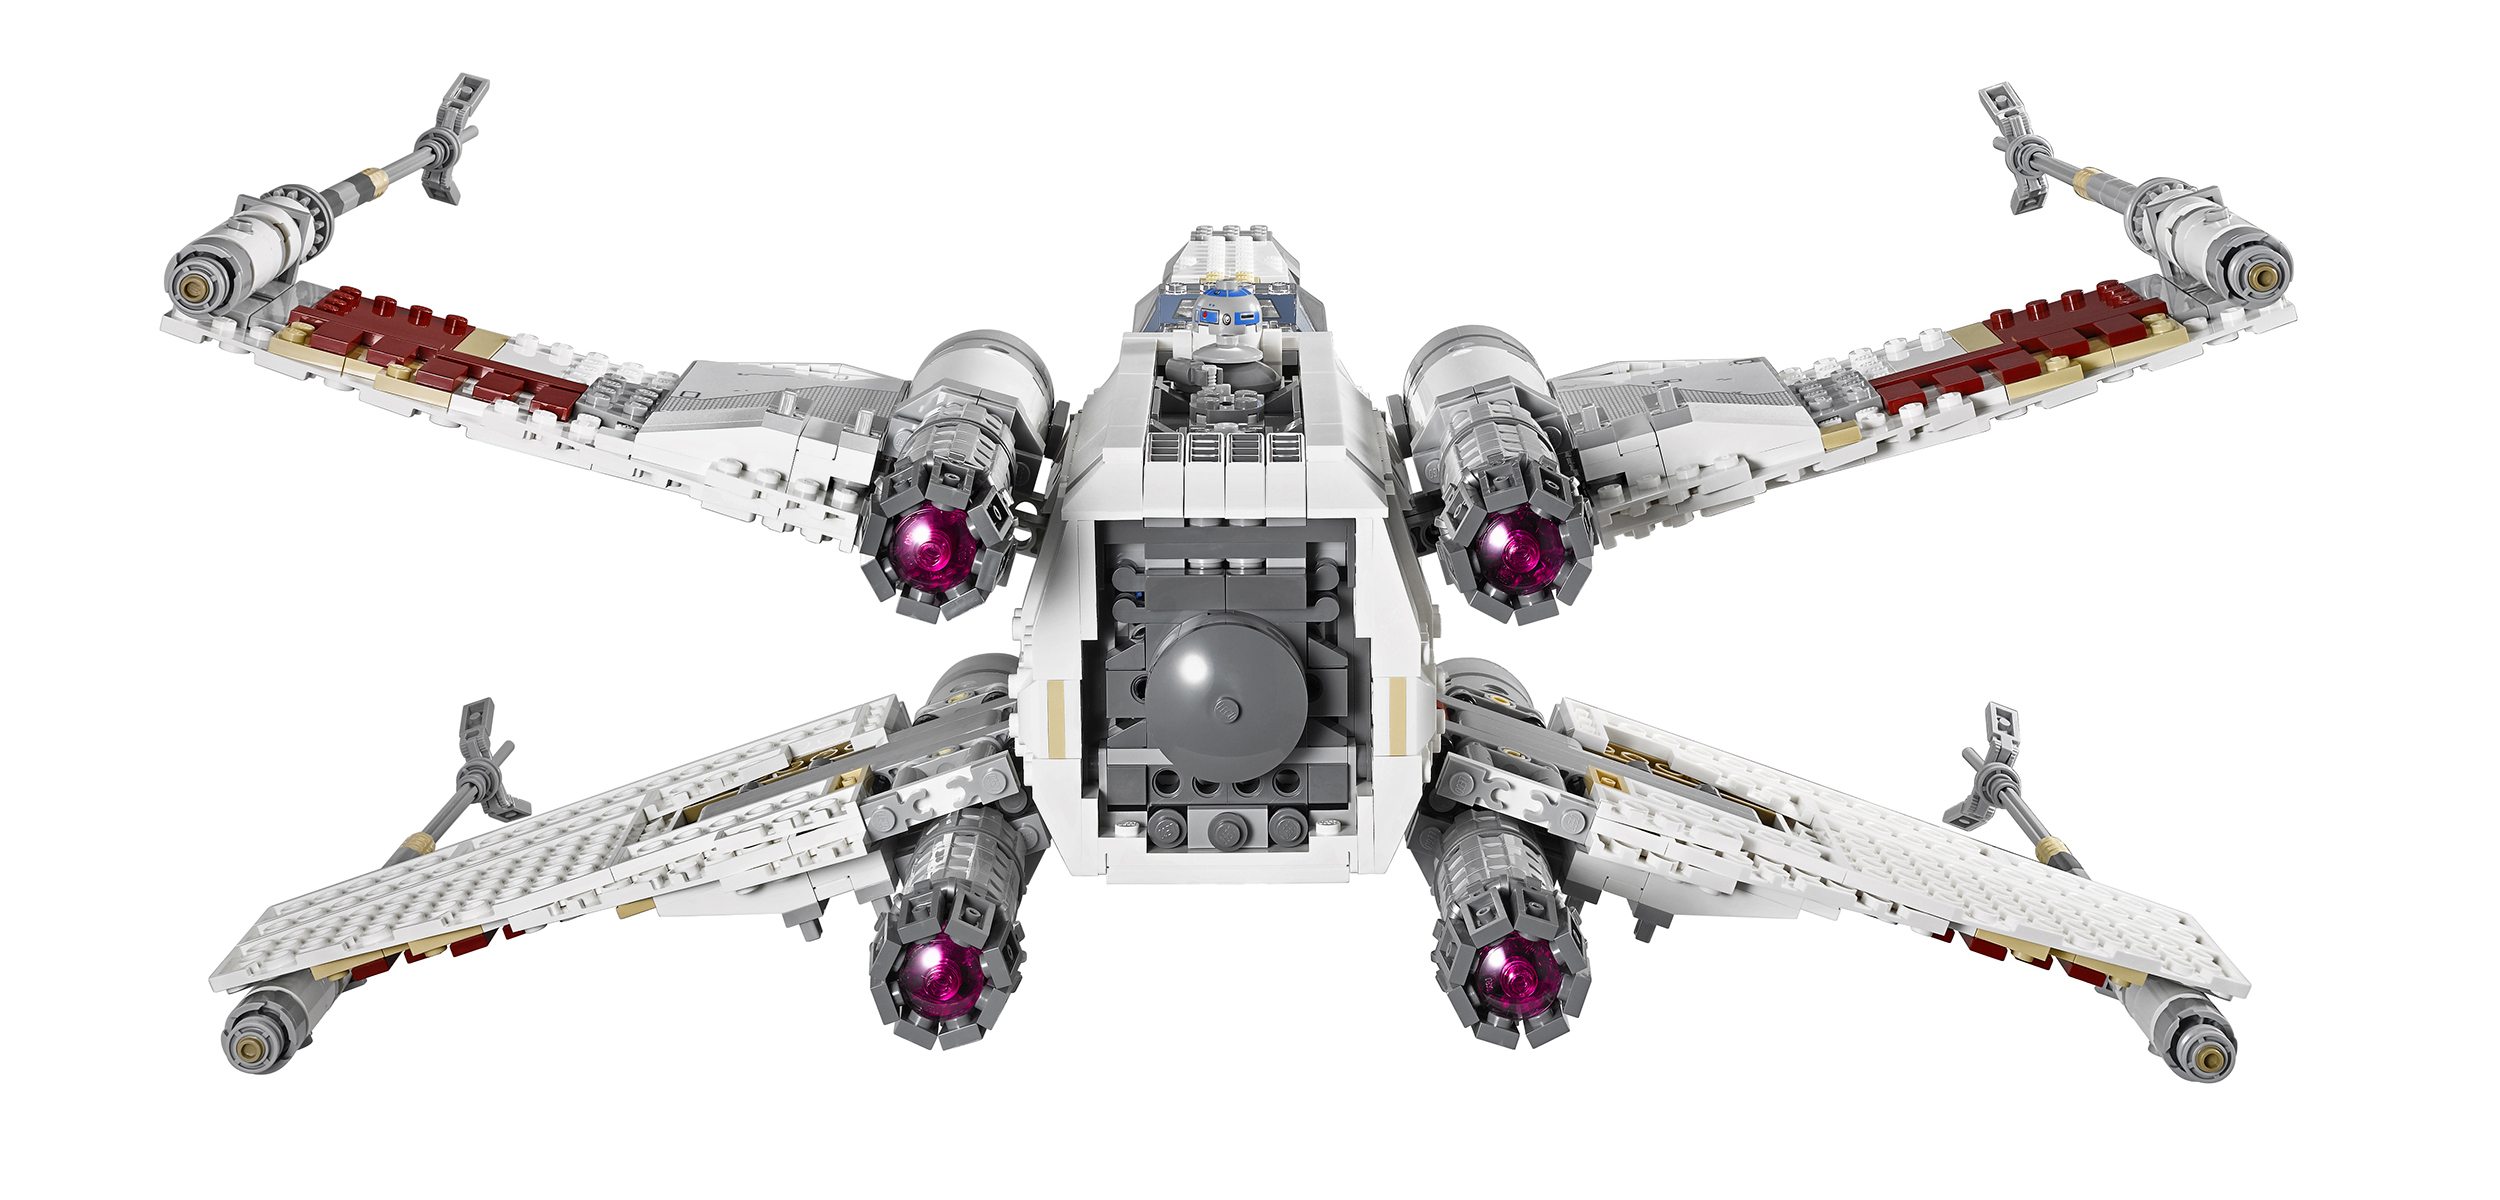 Lego Red Five X Wing Starfighter Announced